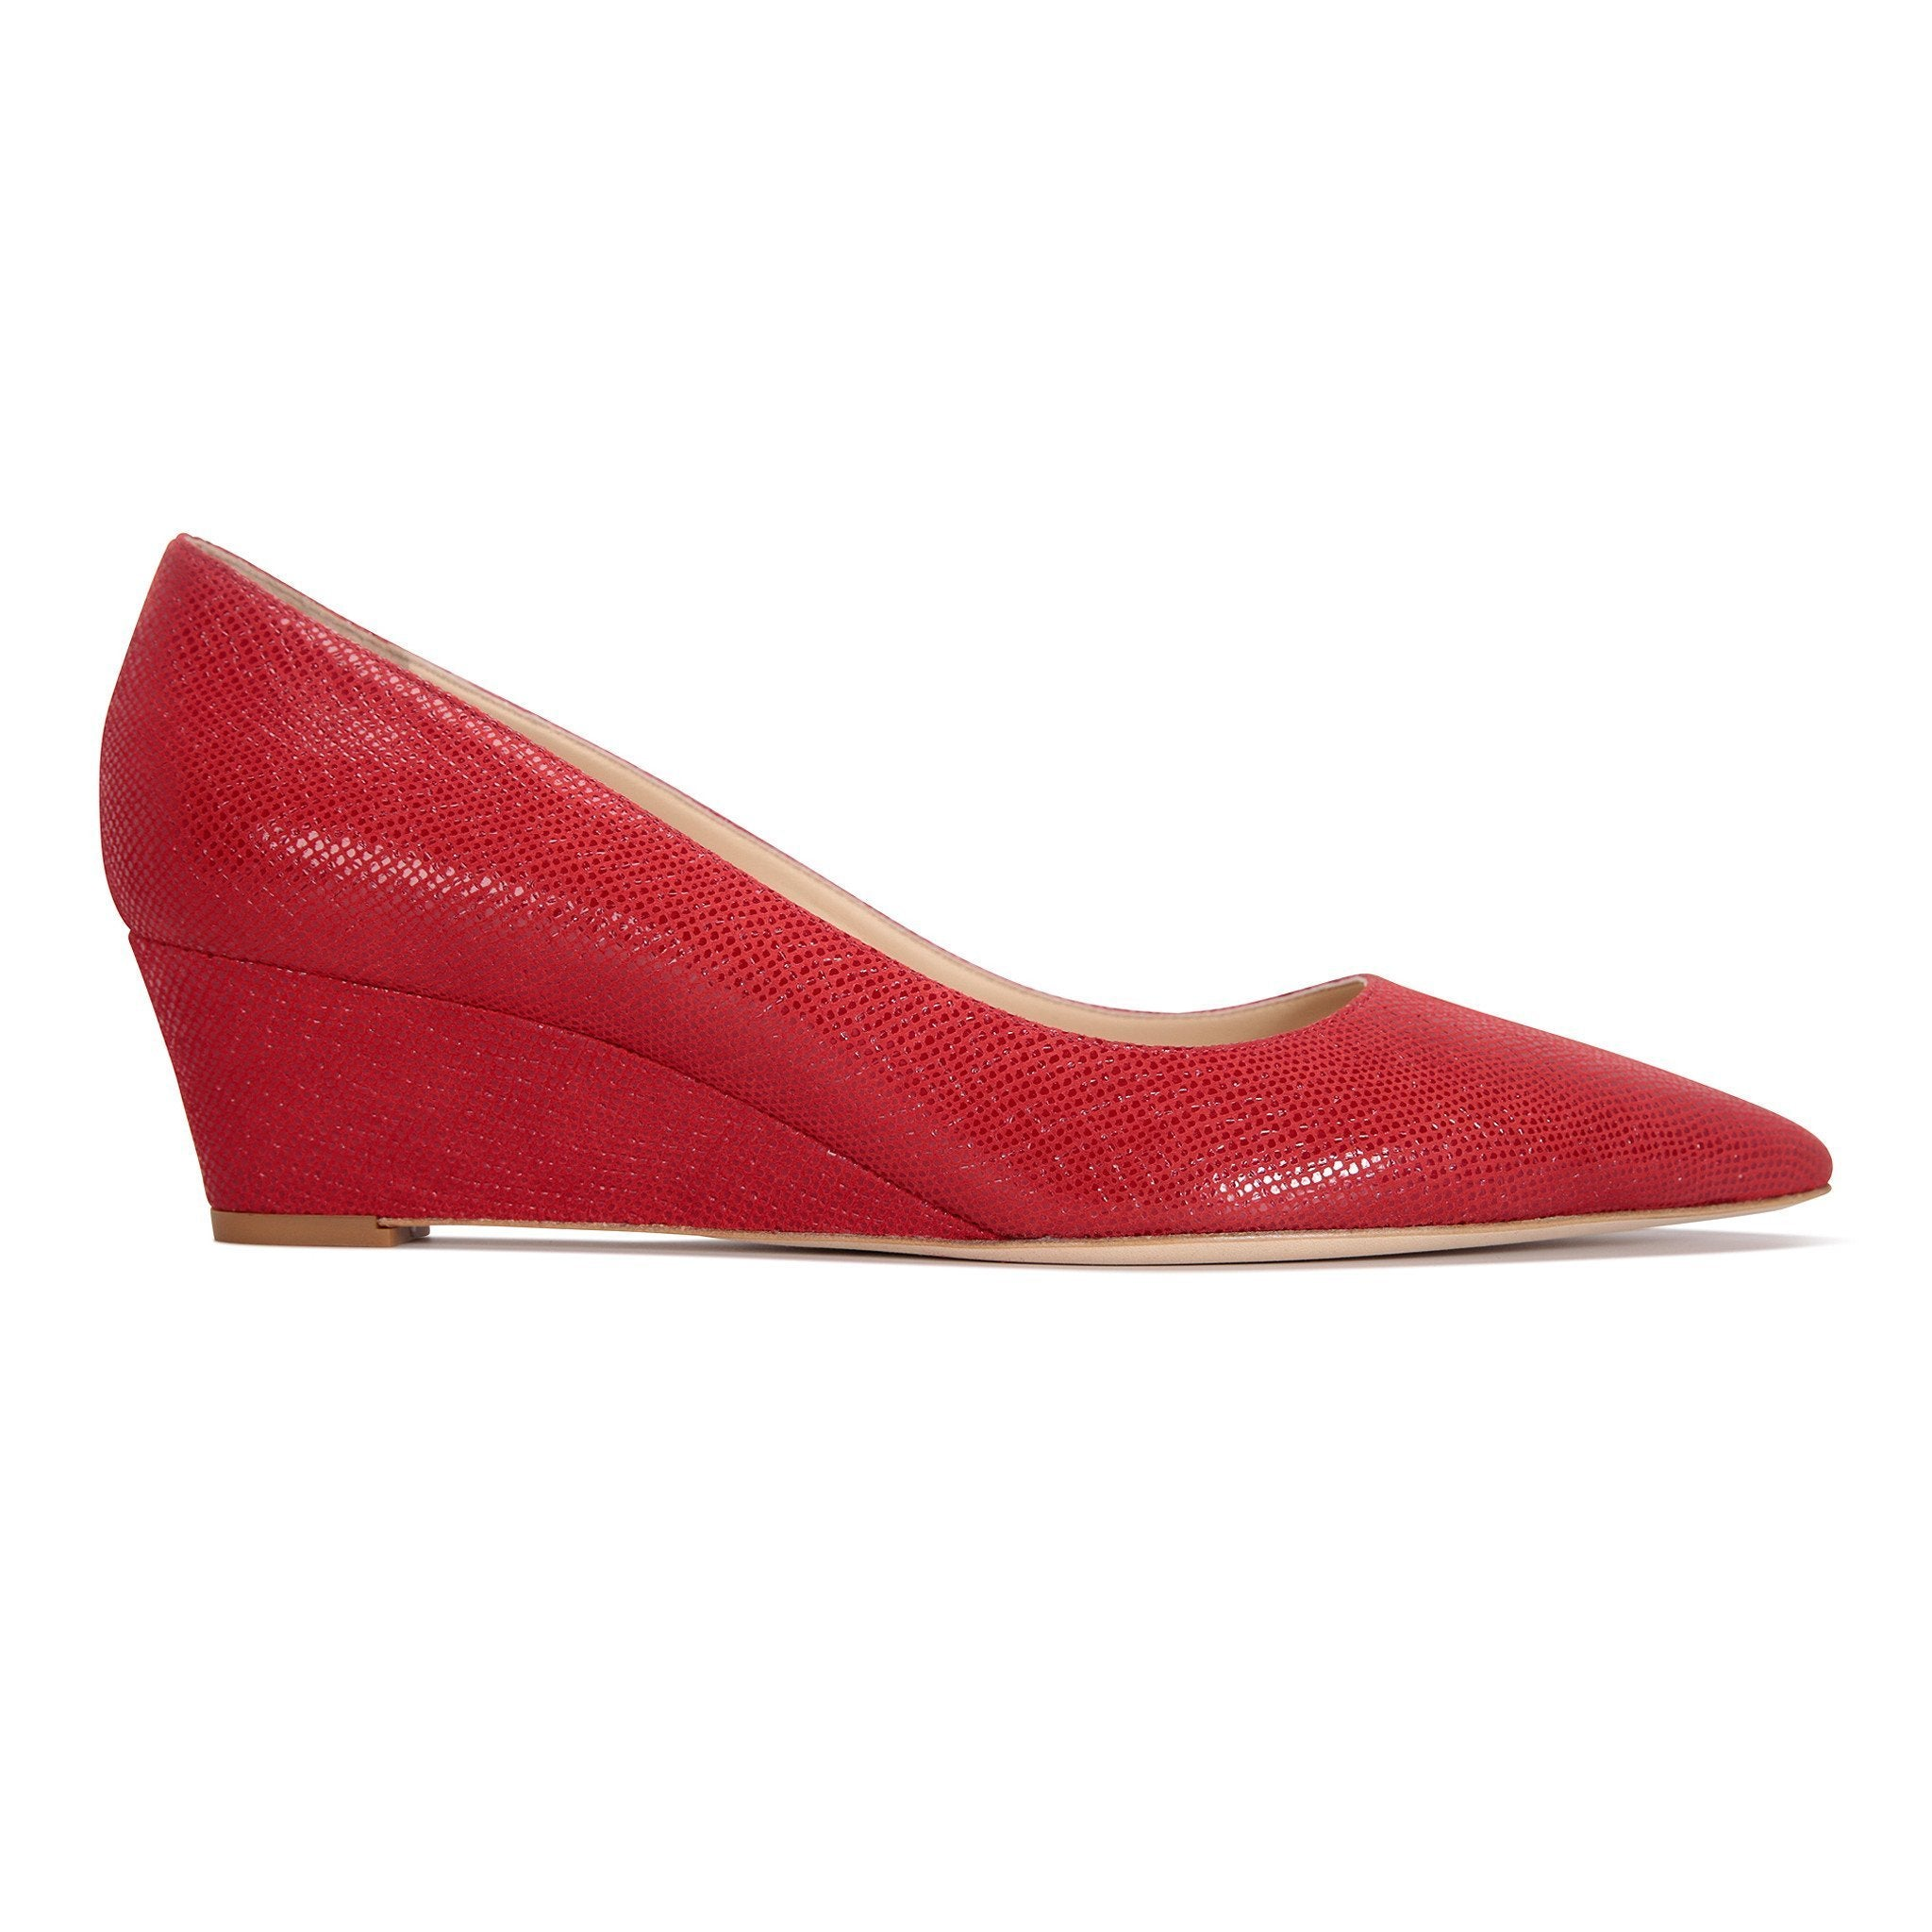 TRENTO - Karung Rosso, VIAJIYU - Women's Hand Made Sustainable Luxury Shoes. Made in Italy. Made to Order.